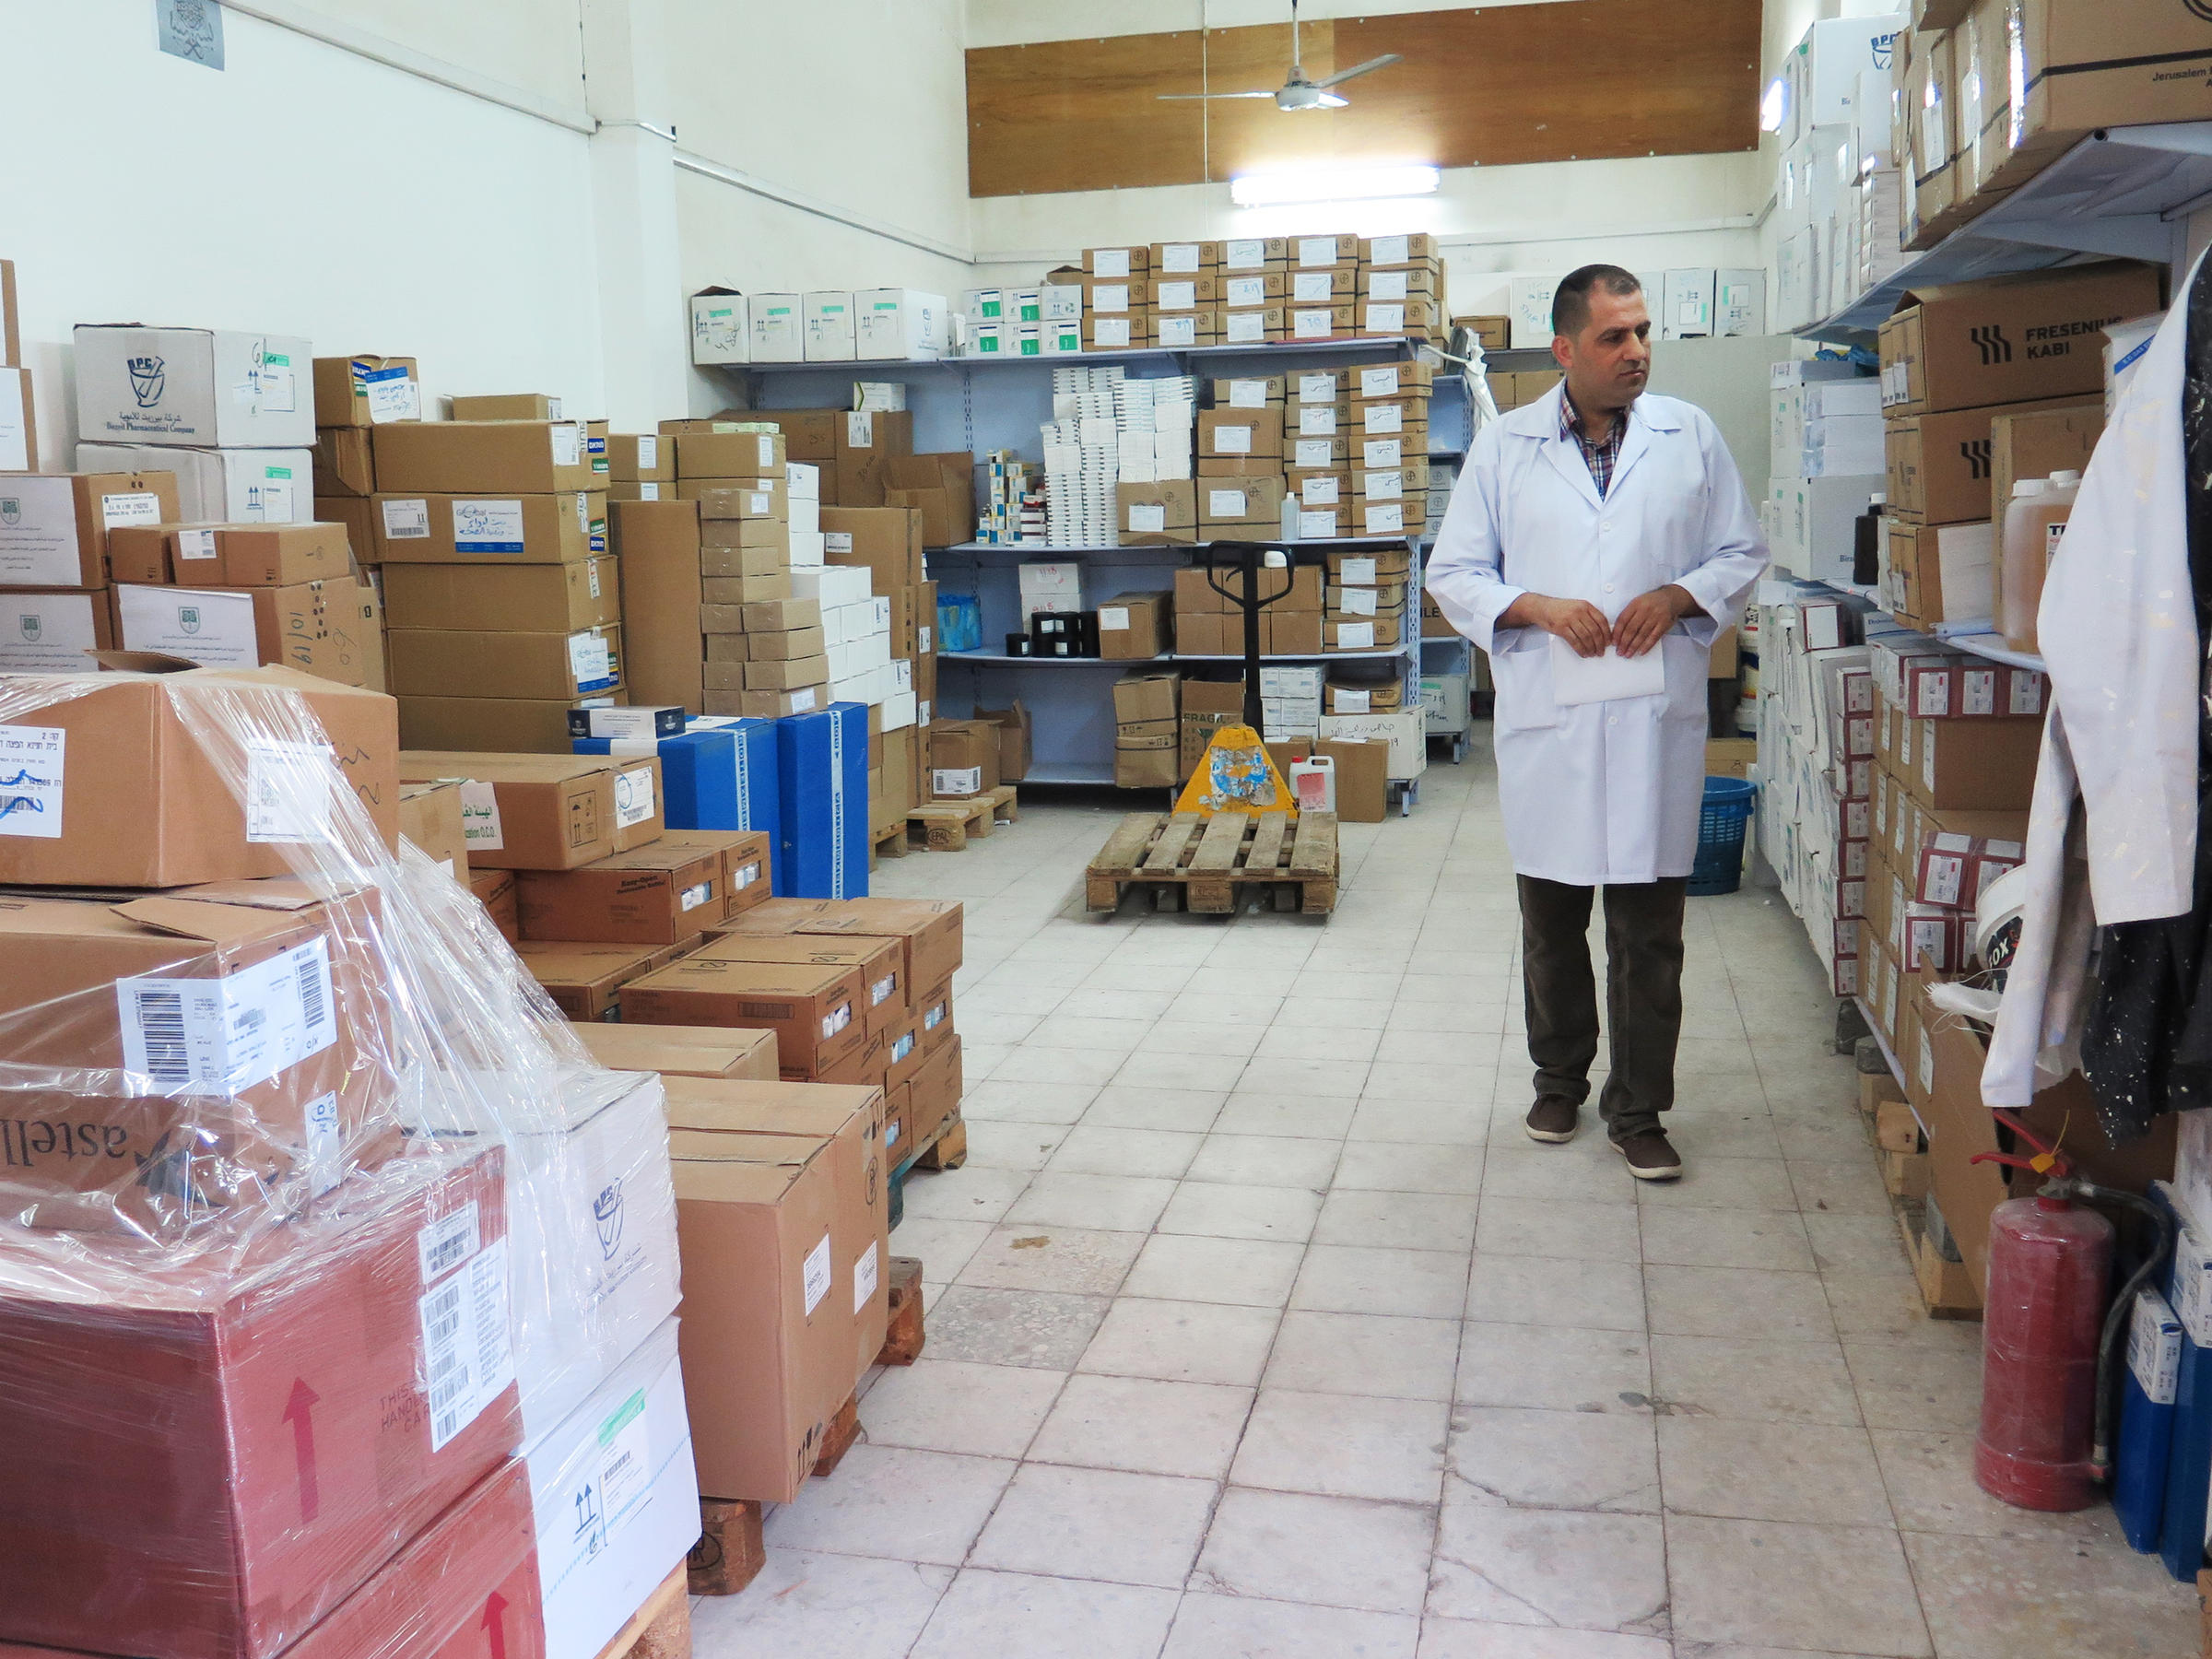 Nael Skaik the pharmacy director at Gaza's main hospital says this medicine storage room is usually so full of boxes of medicines that it's hard to find space to walk. Now medicines are running out as Palestinian Authority President Mahmoud Ab